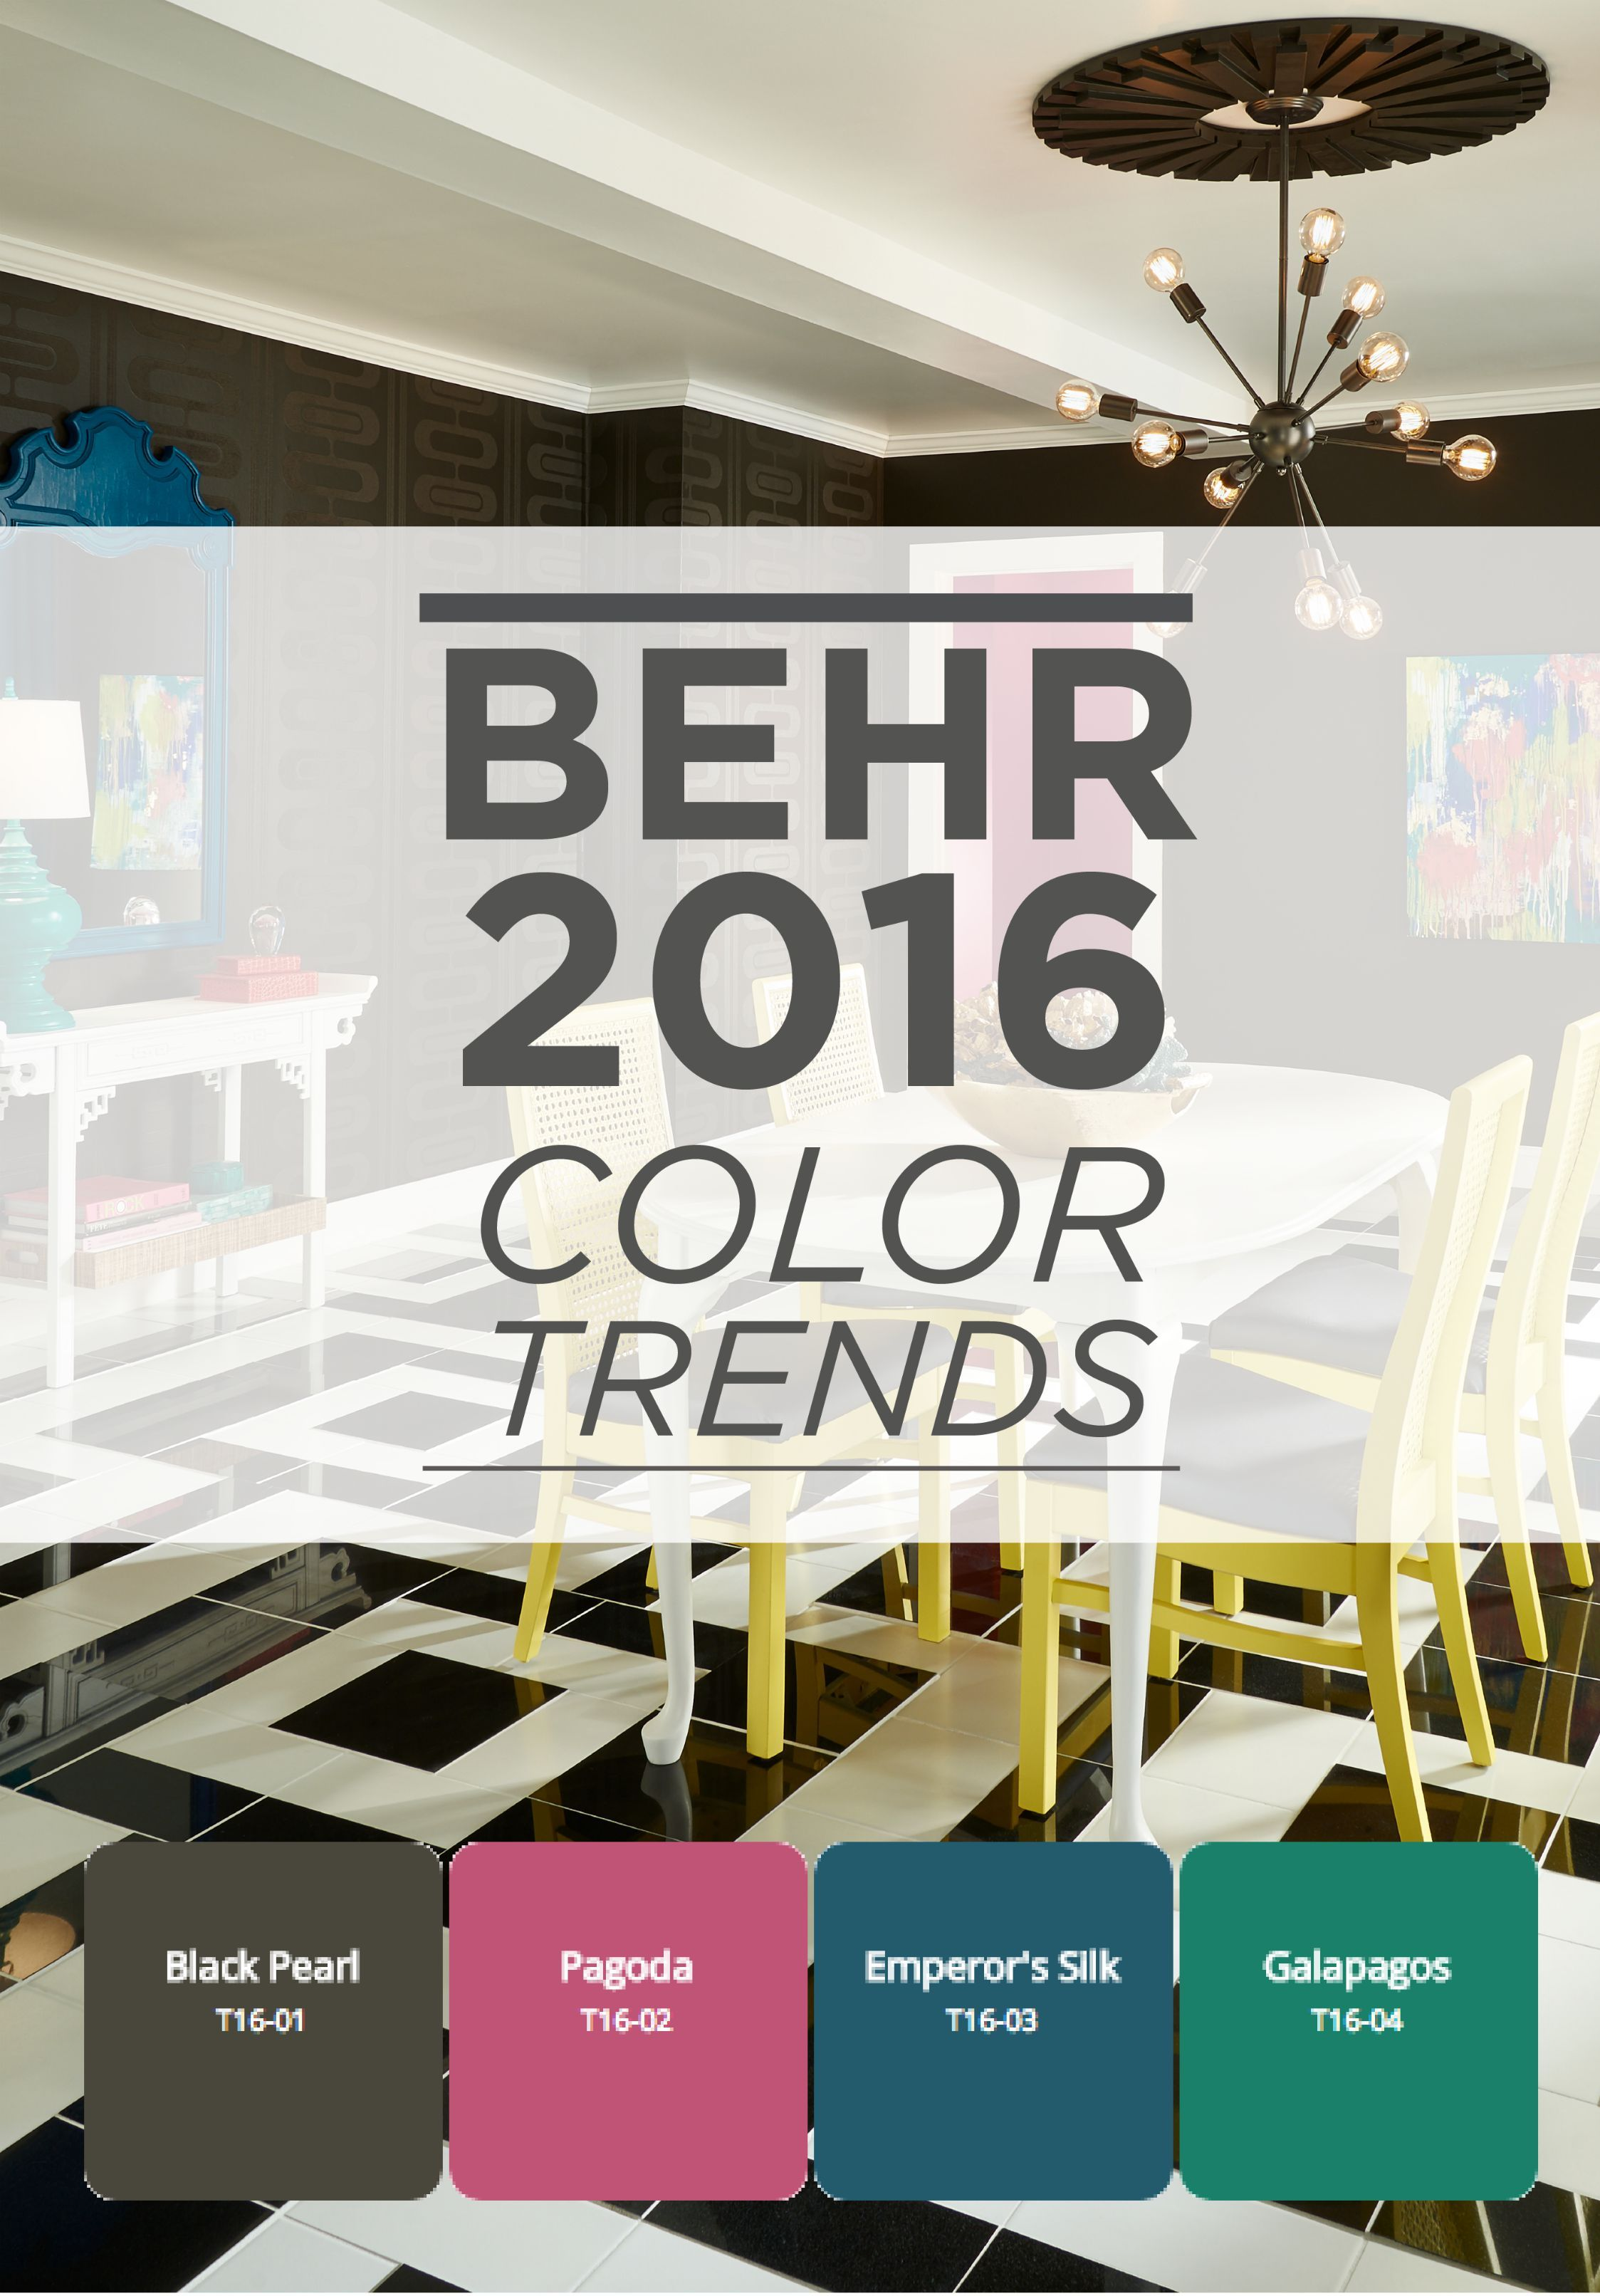 The 2016 Behr Color Trends Will Inspire Palette In Your New Home Bright Colors Contrast Perfectly With Darker Hues For A Contemporary And